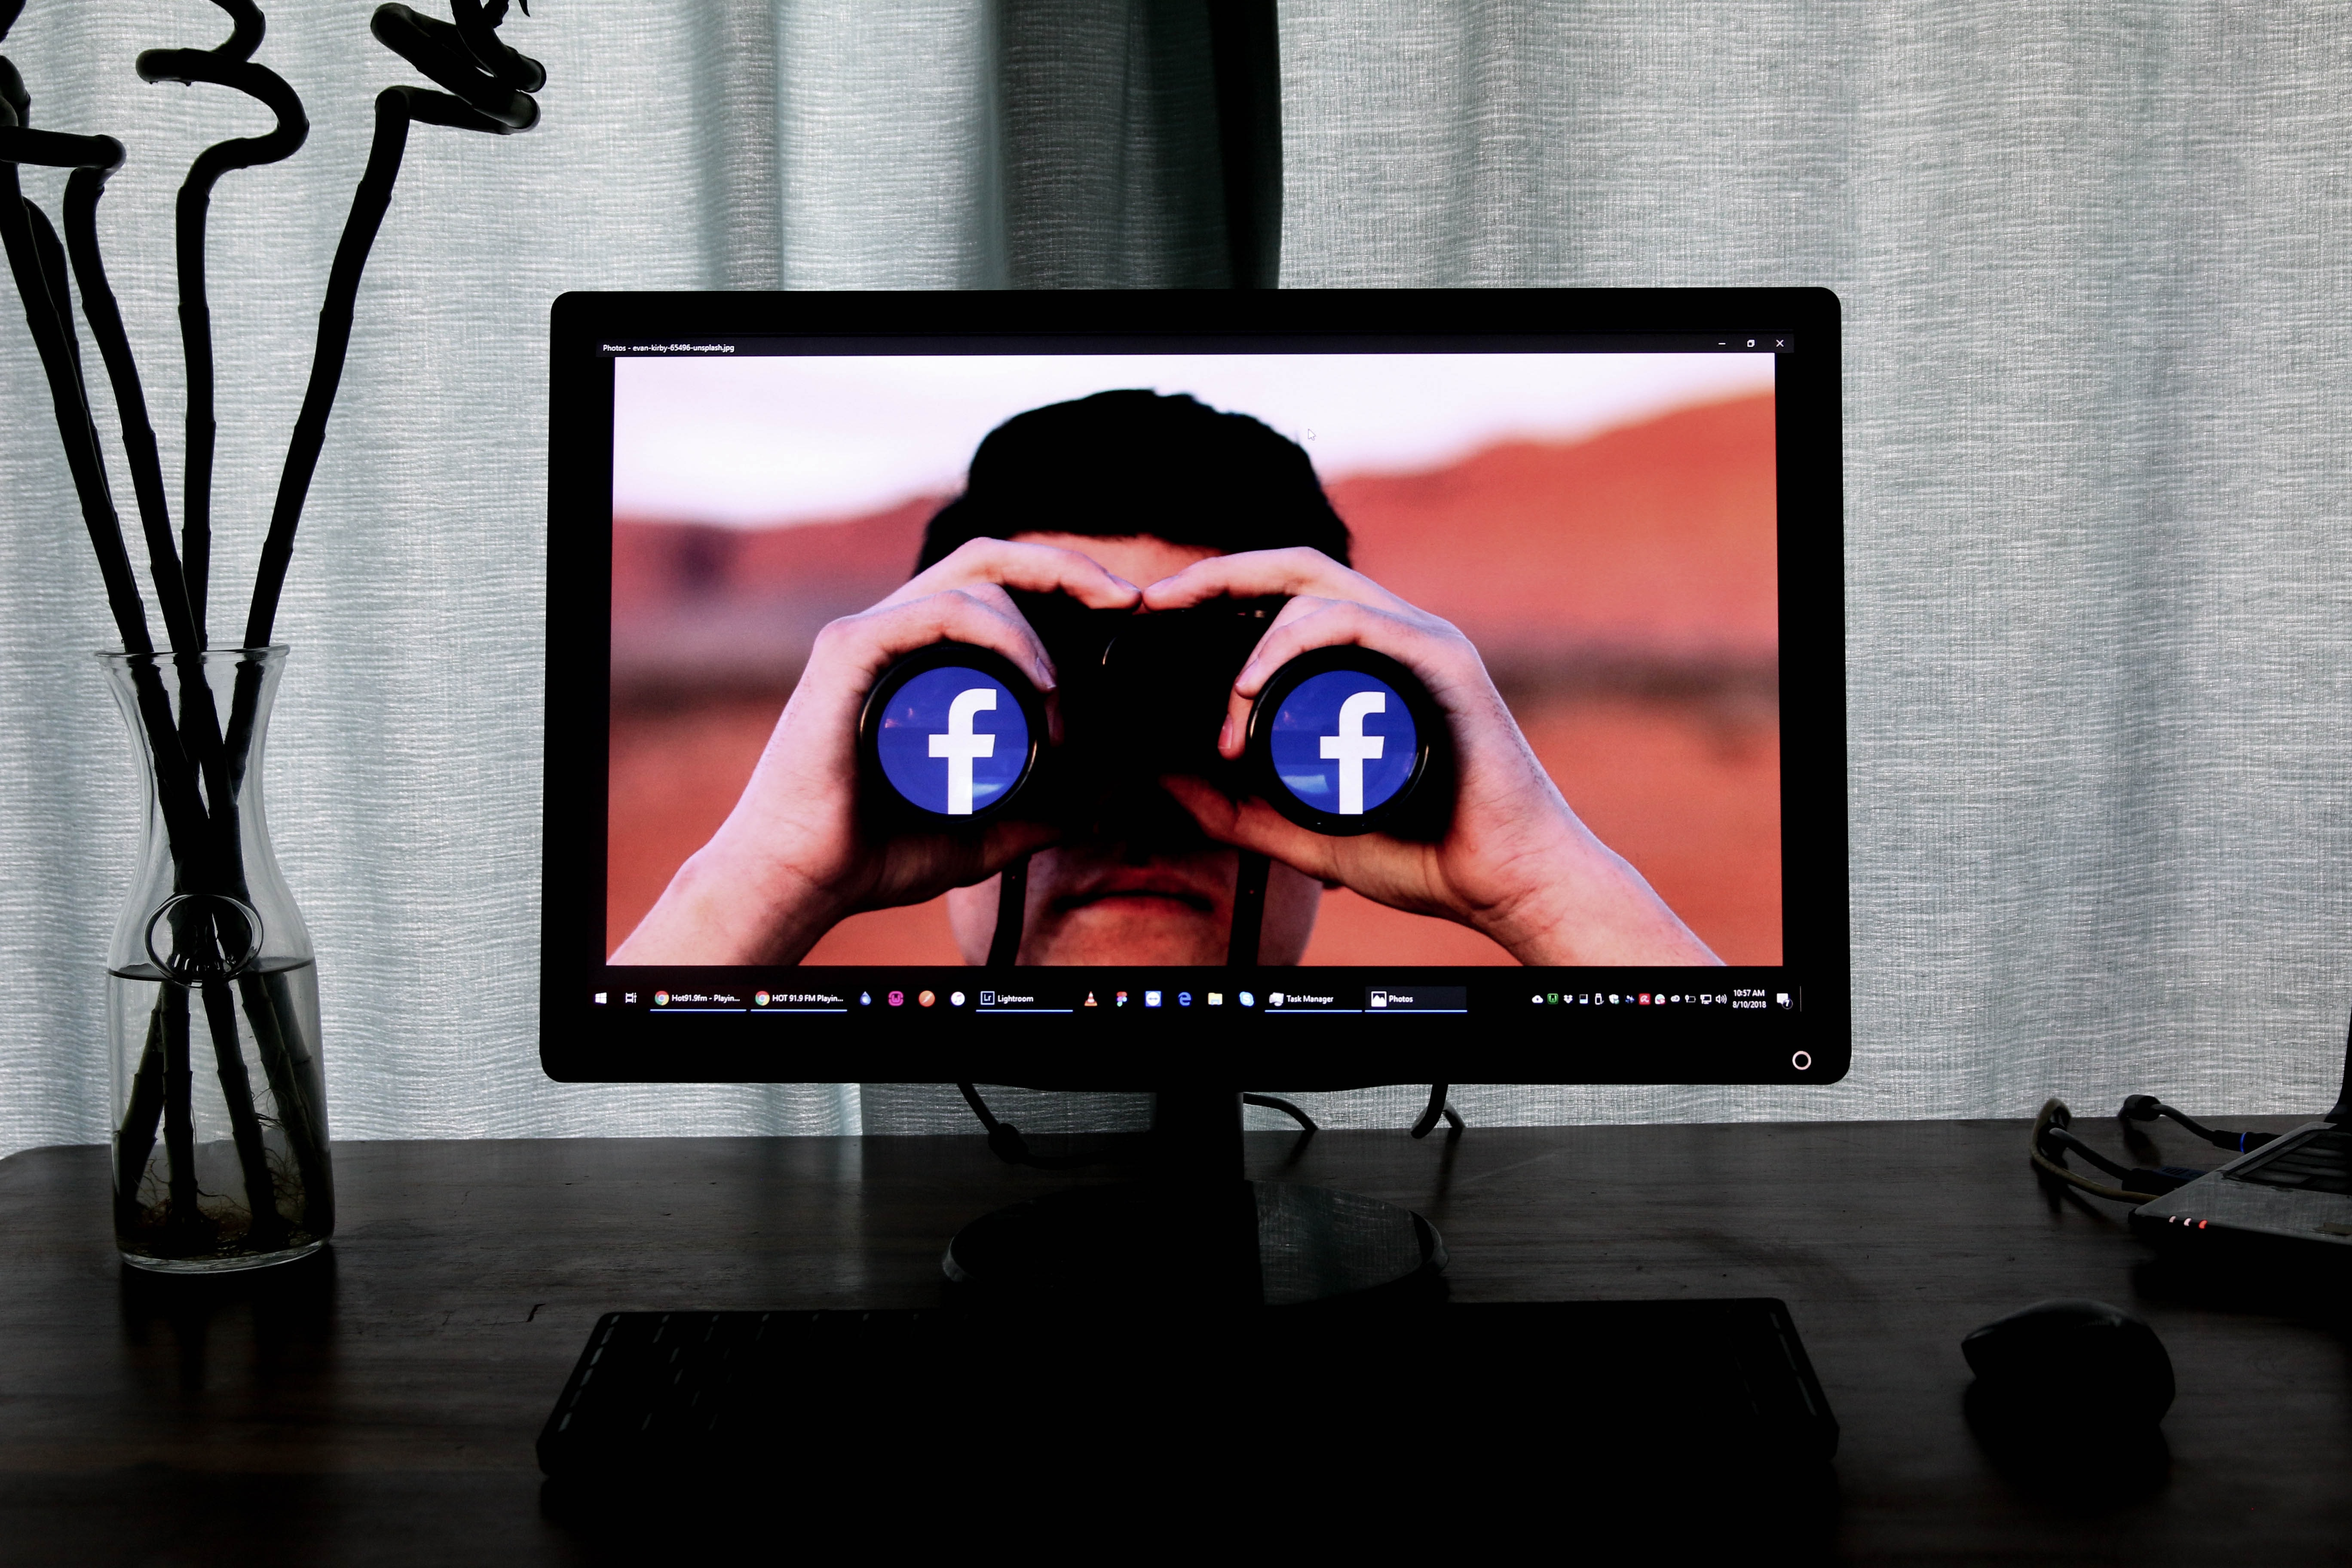 Computer monitor showing man with binoculars staring out at viewer. Lenses of binoculars are the Facebook logo. Image by Glen Carrie, via Unsplash.com.